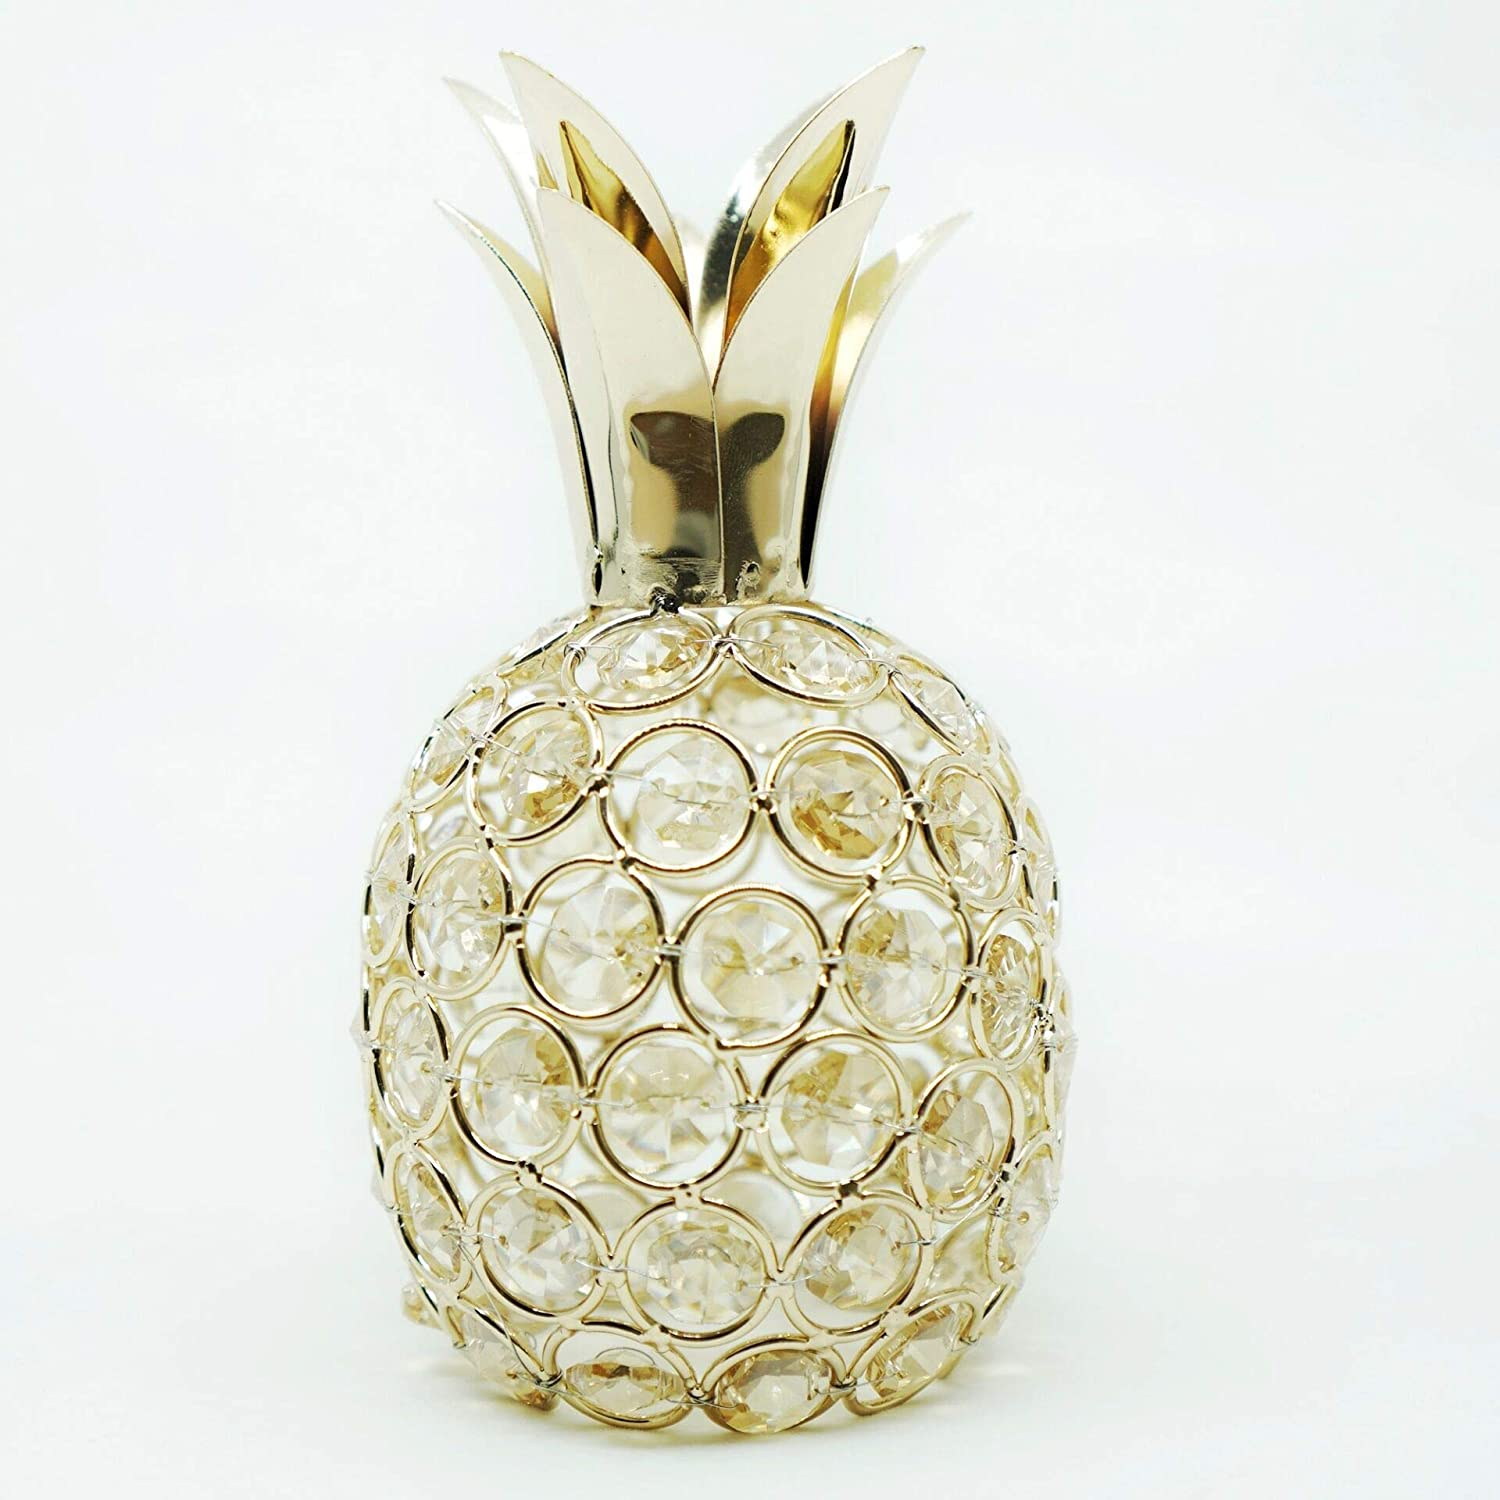 Artificial Fruit Ornament Table Decor, Crystal Fruit Gift (Pineapple)